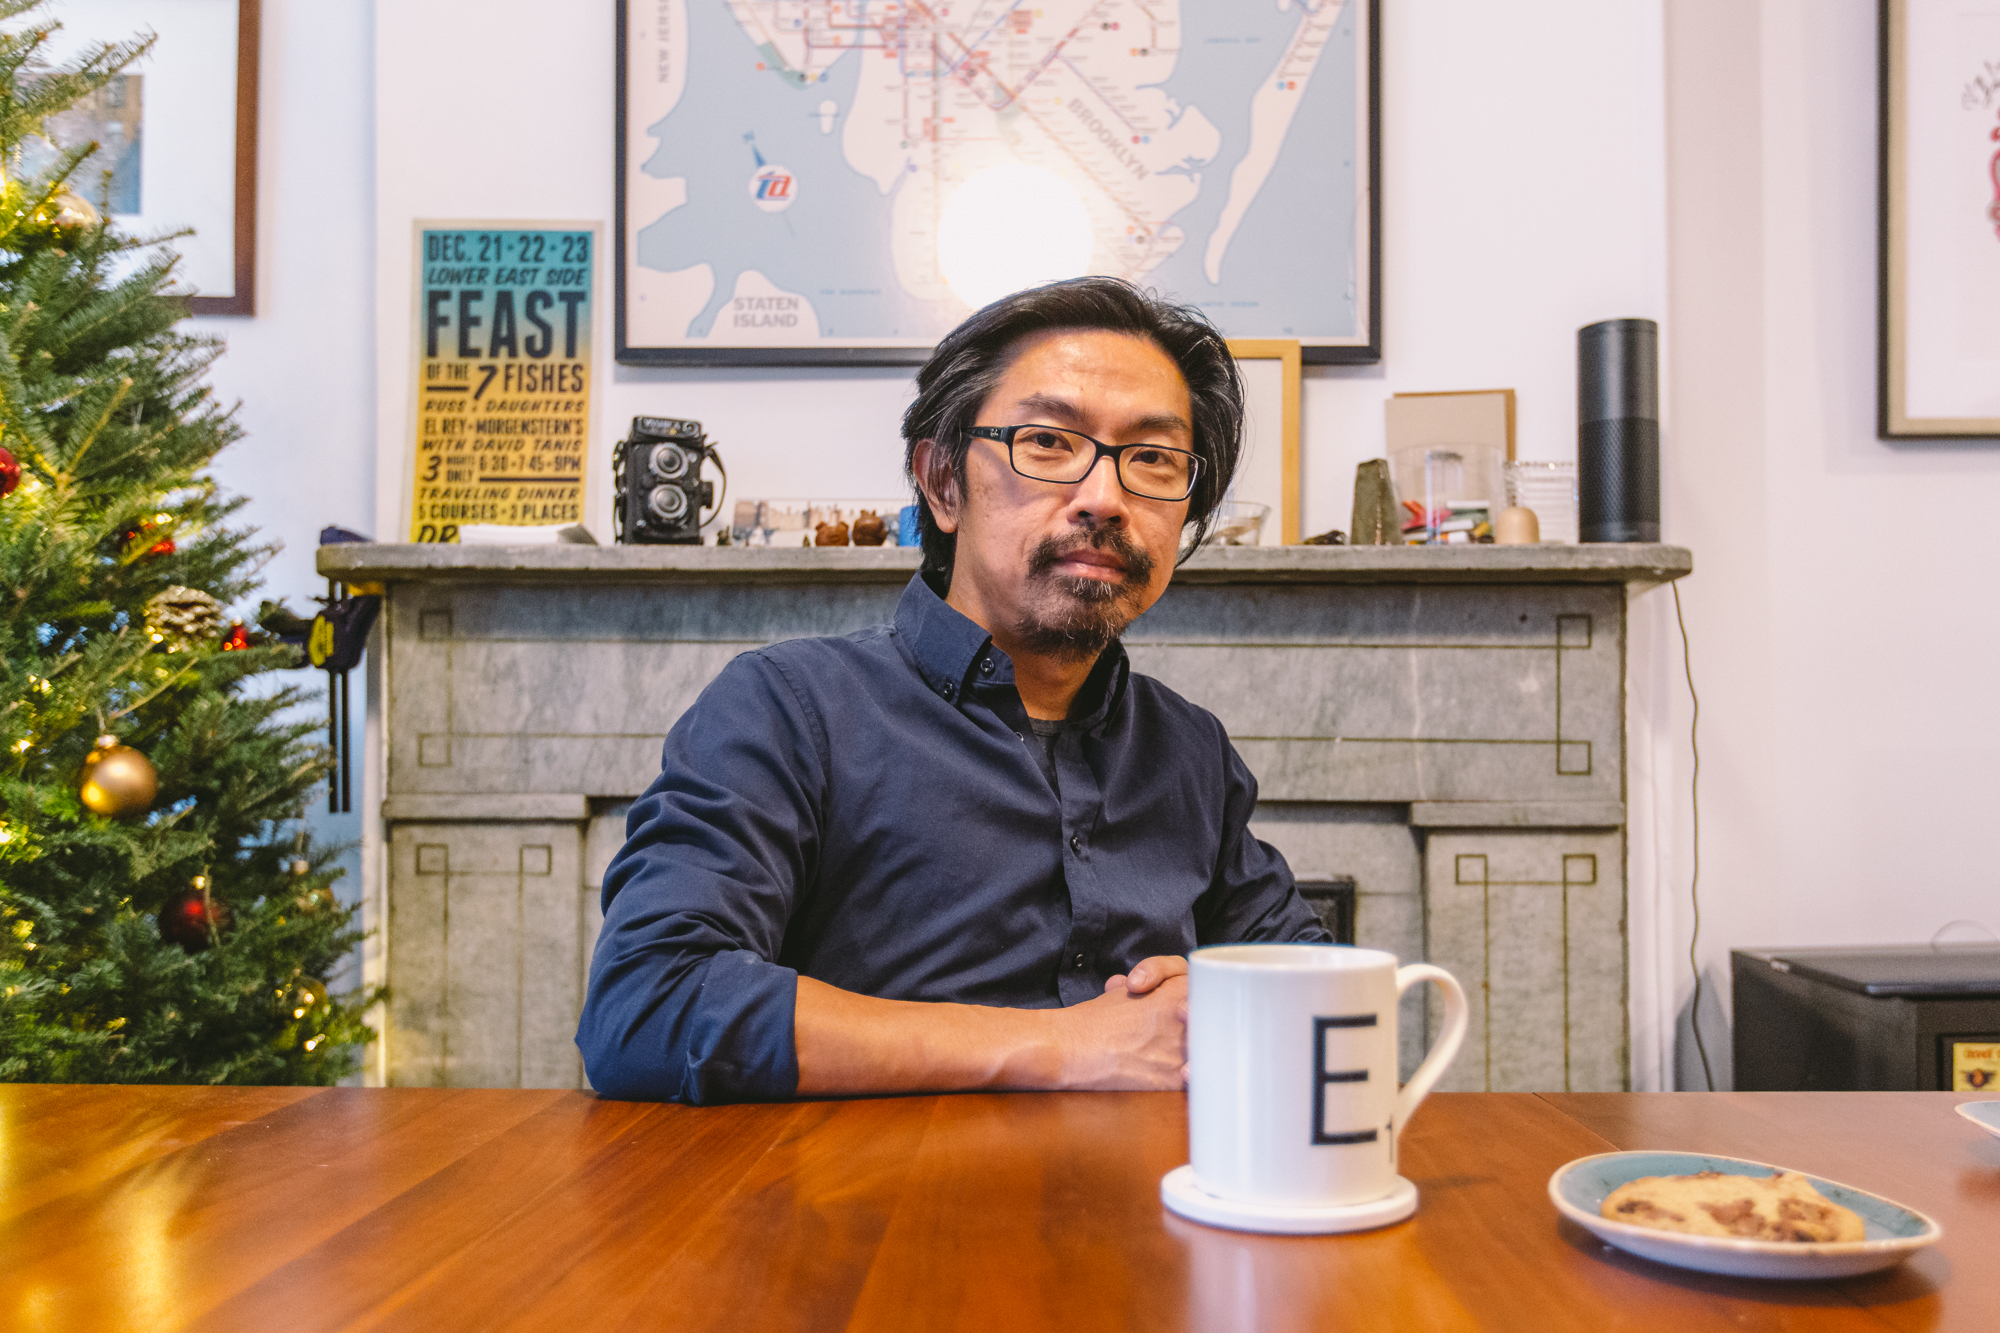 Evan Sung on Wellfed Creative Podcast